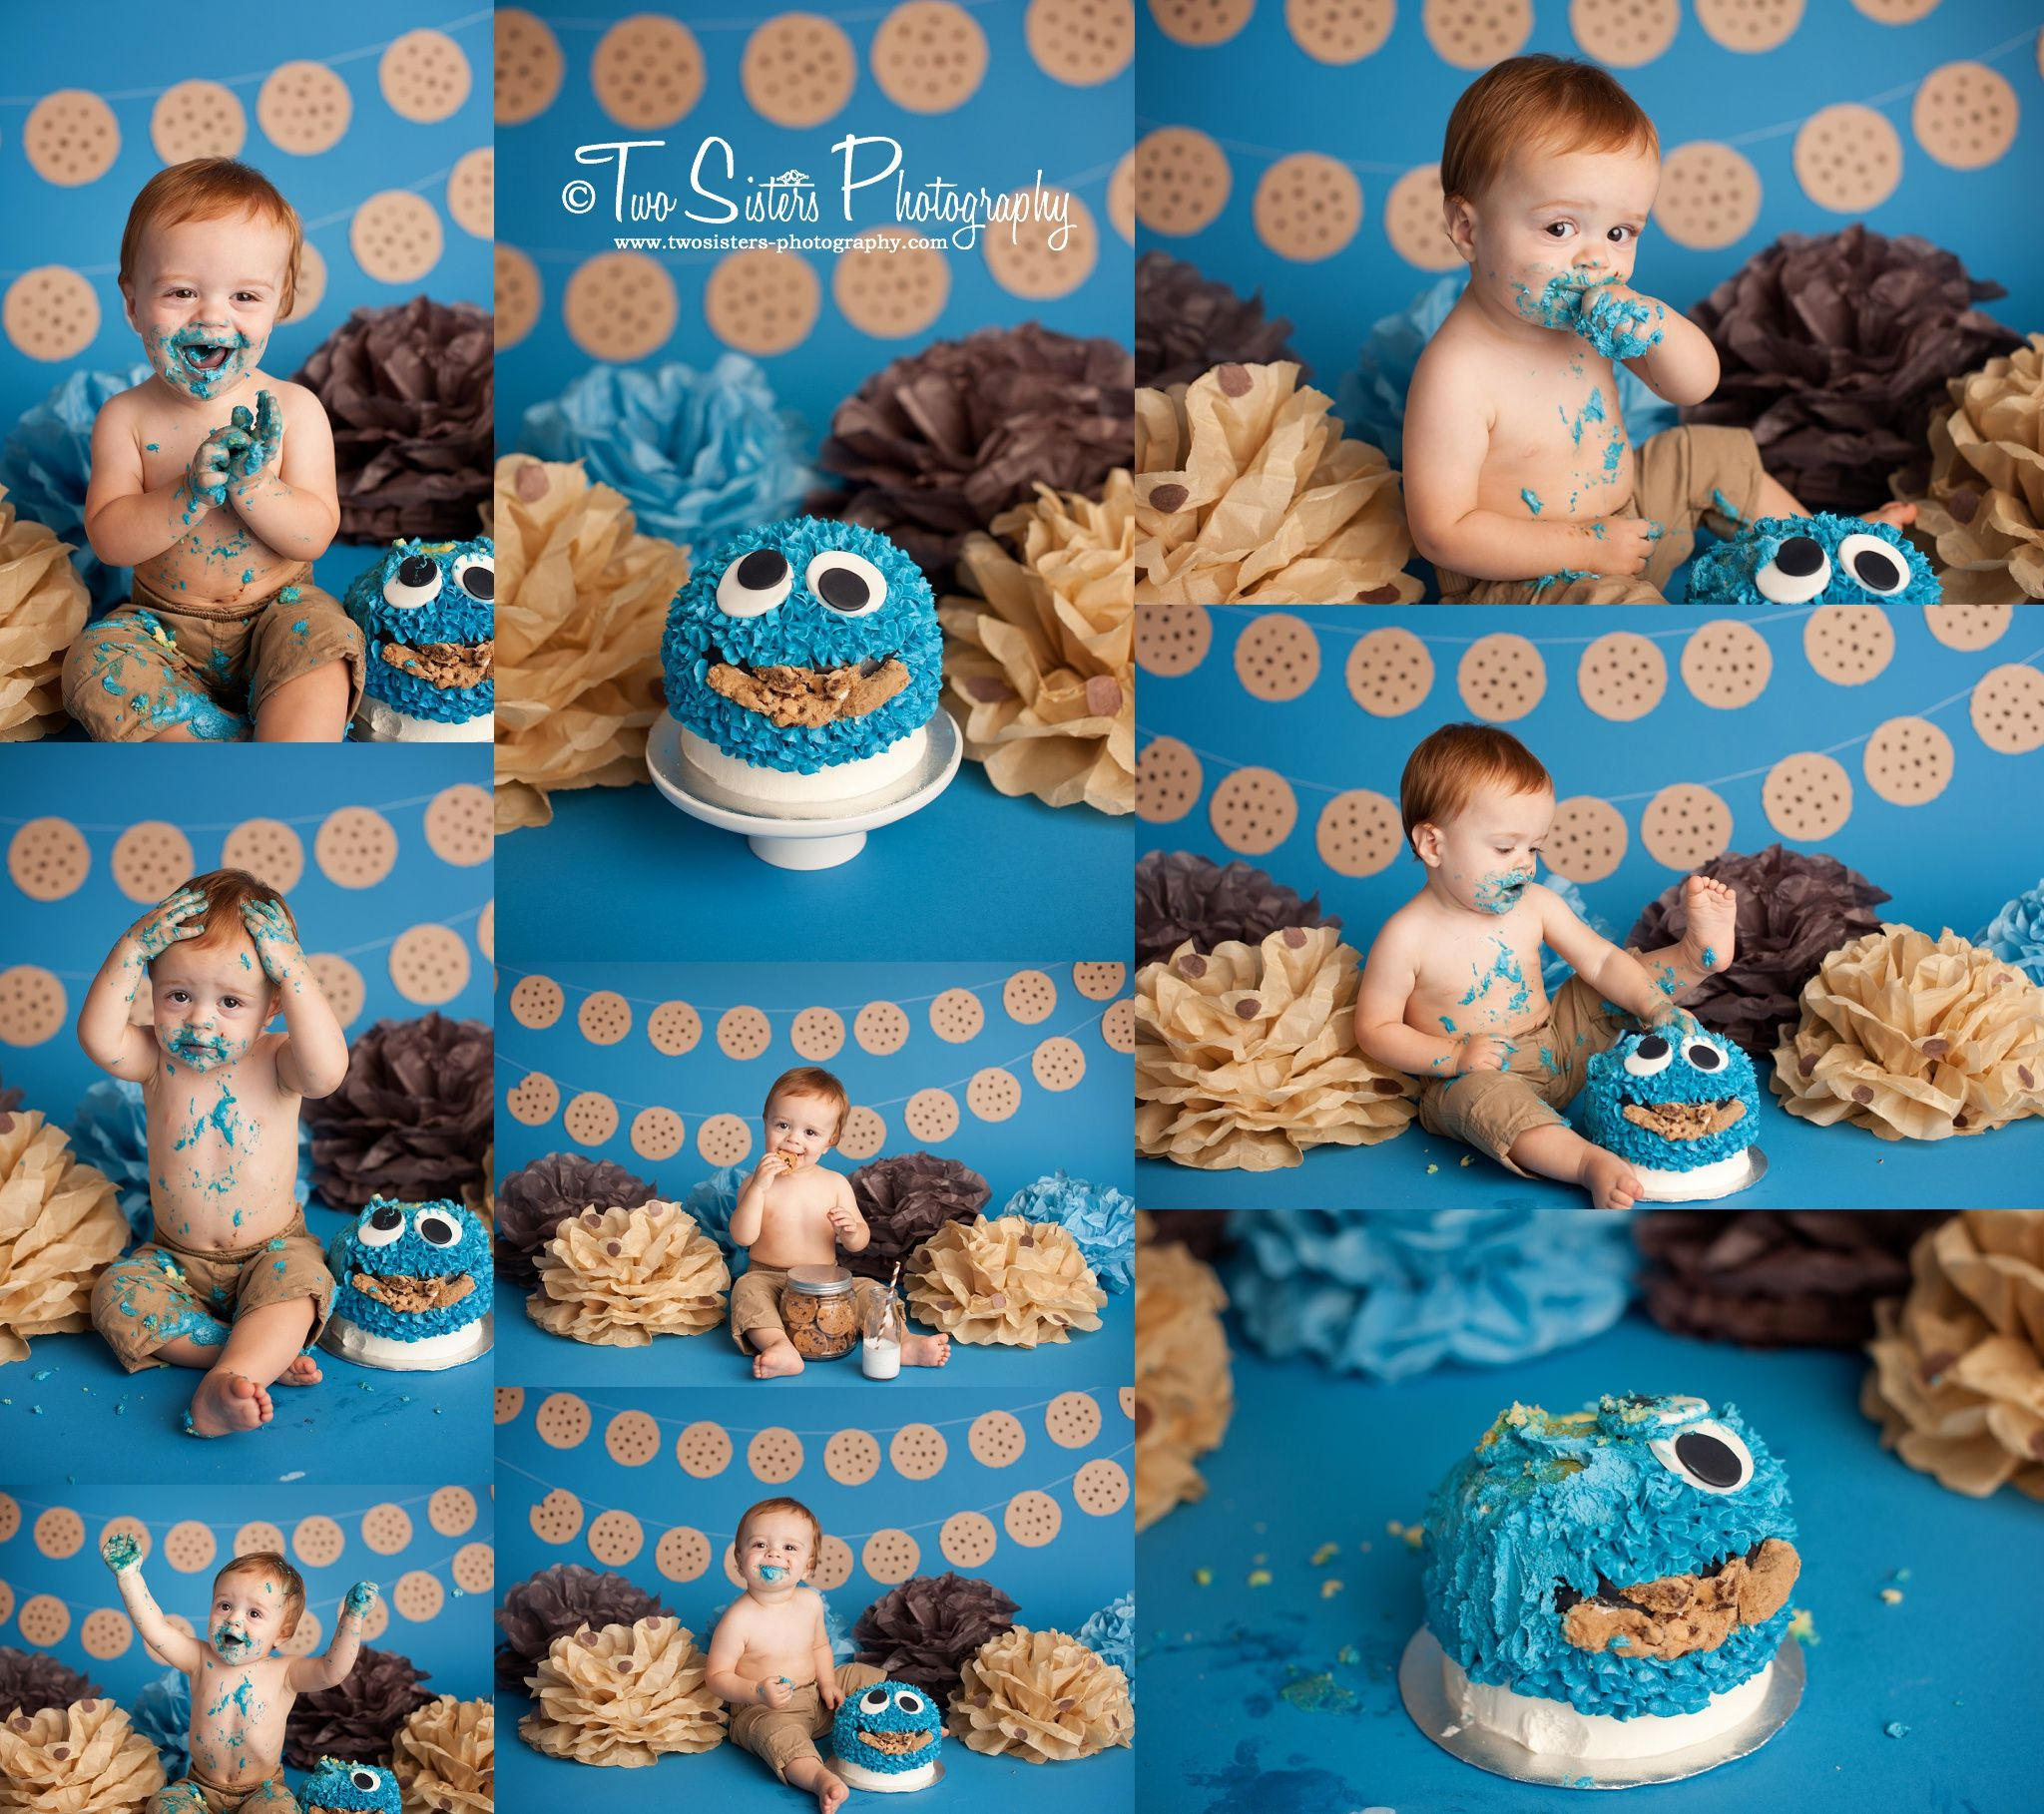 Cookie monster cake smash session first birthday cake smash